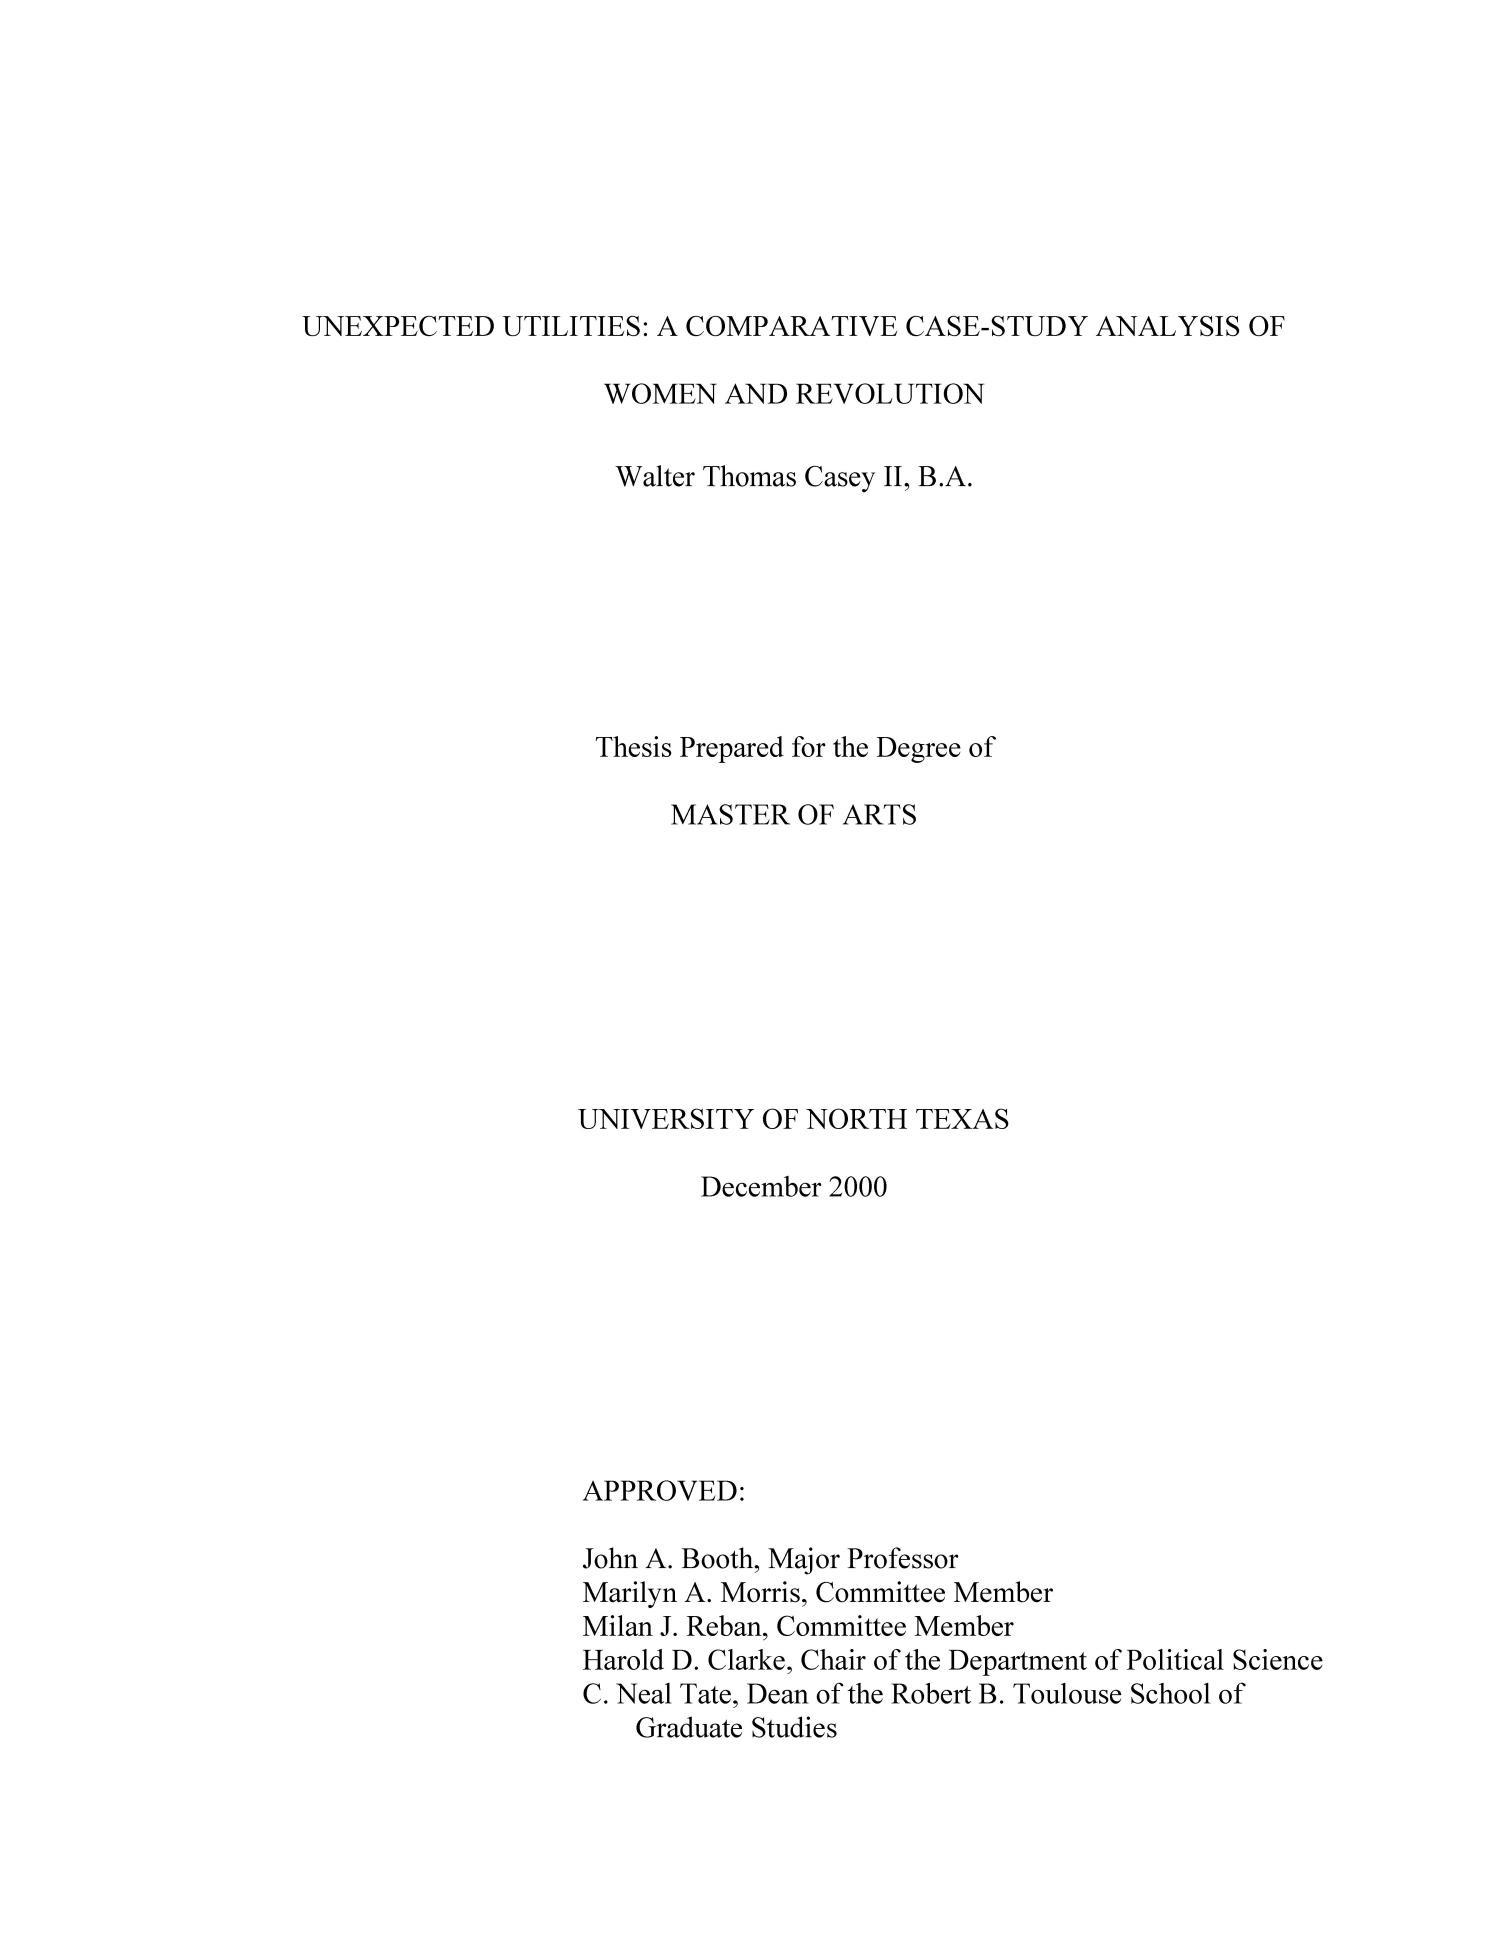 Dissertation for the degree of doctor of science in political science